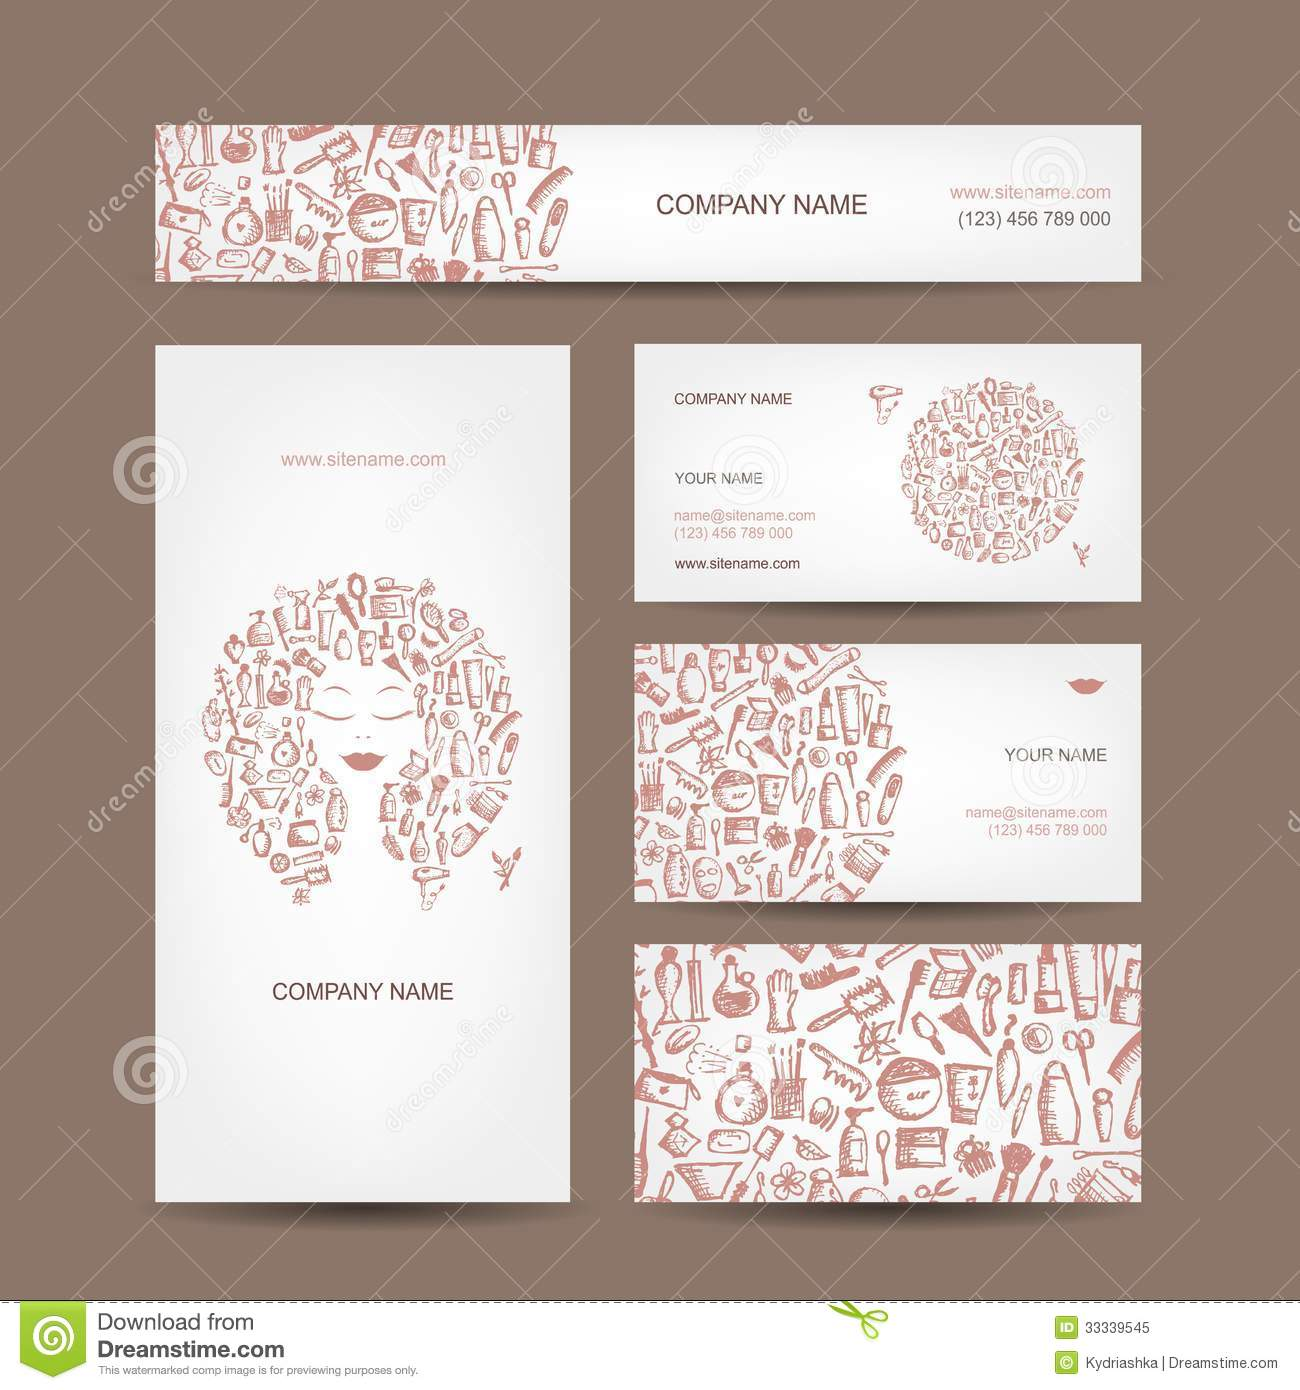 Business Cards Design, Cosmetics And Accessories Royalty Free Stock ...